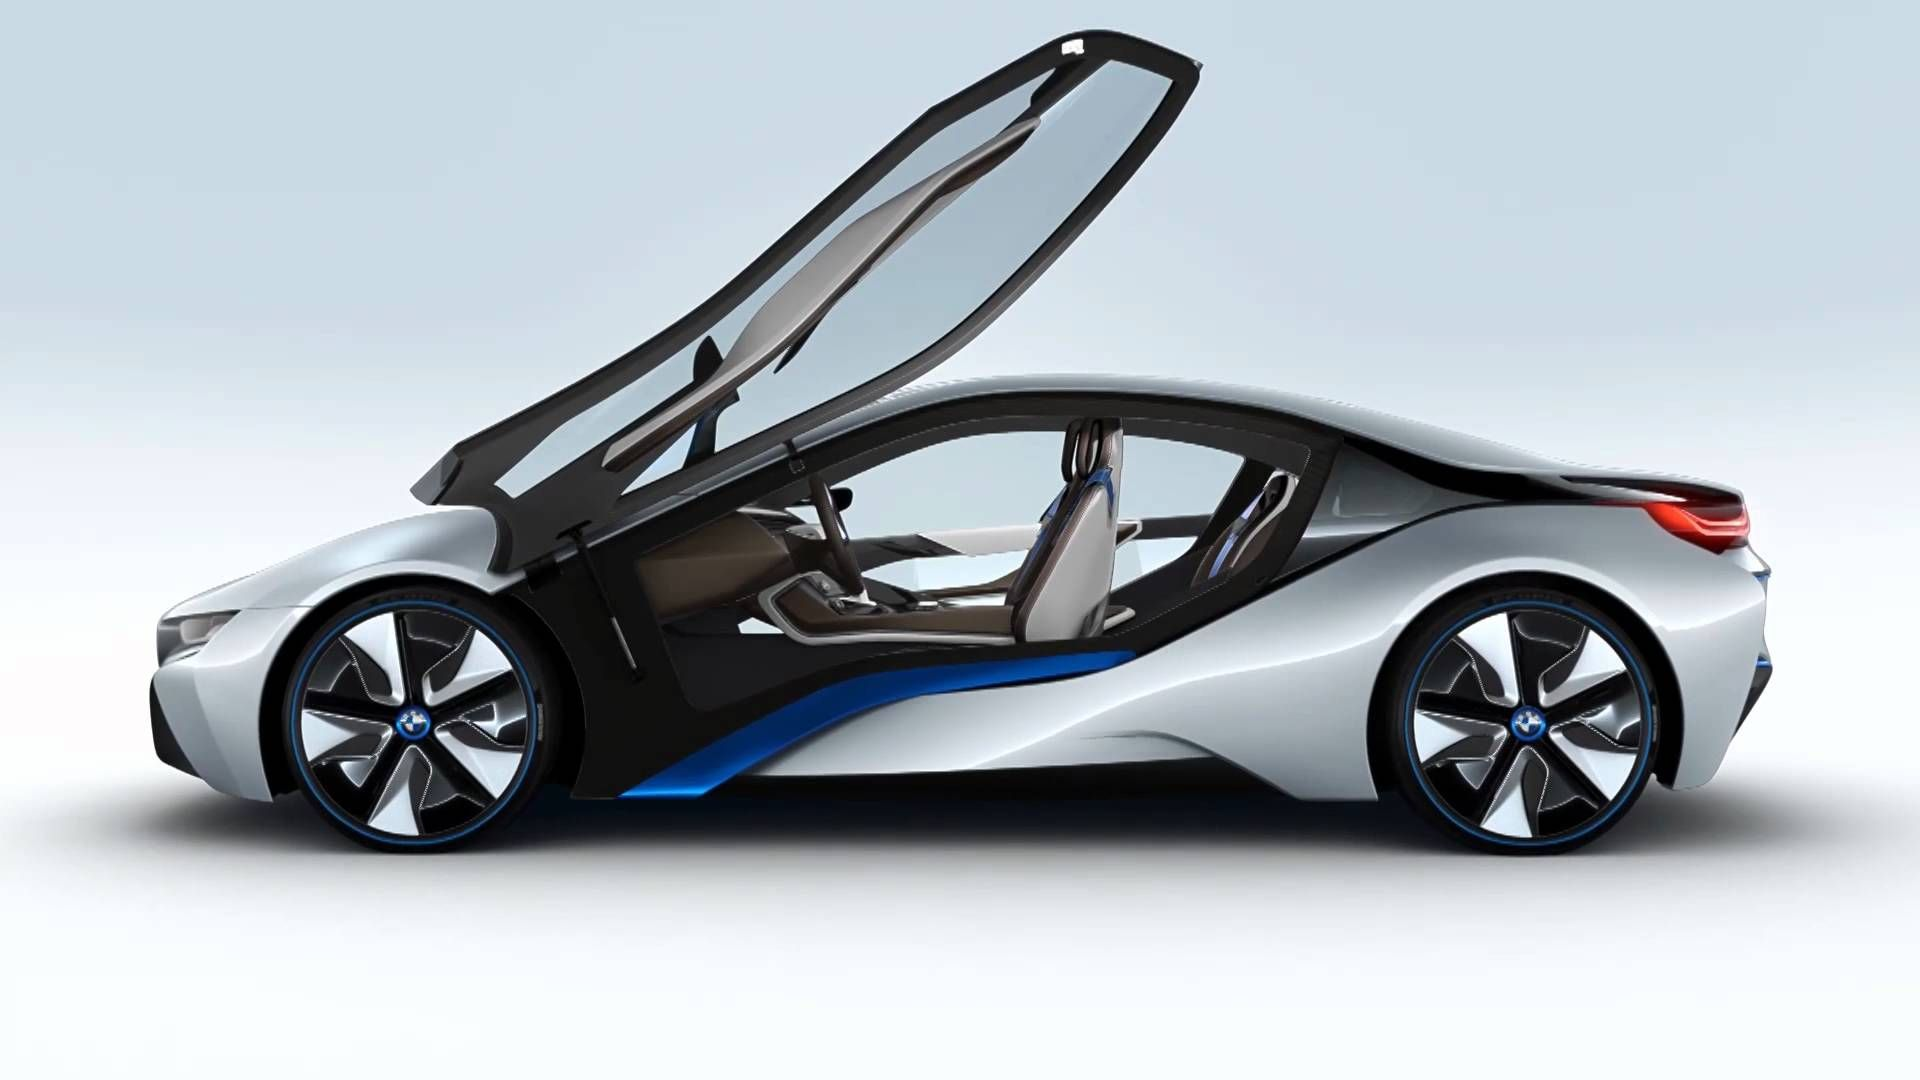 Maxresdefault Jpg 1920 1080 With Images Bmw Sports Car Bmw